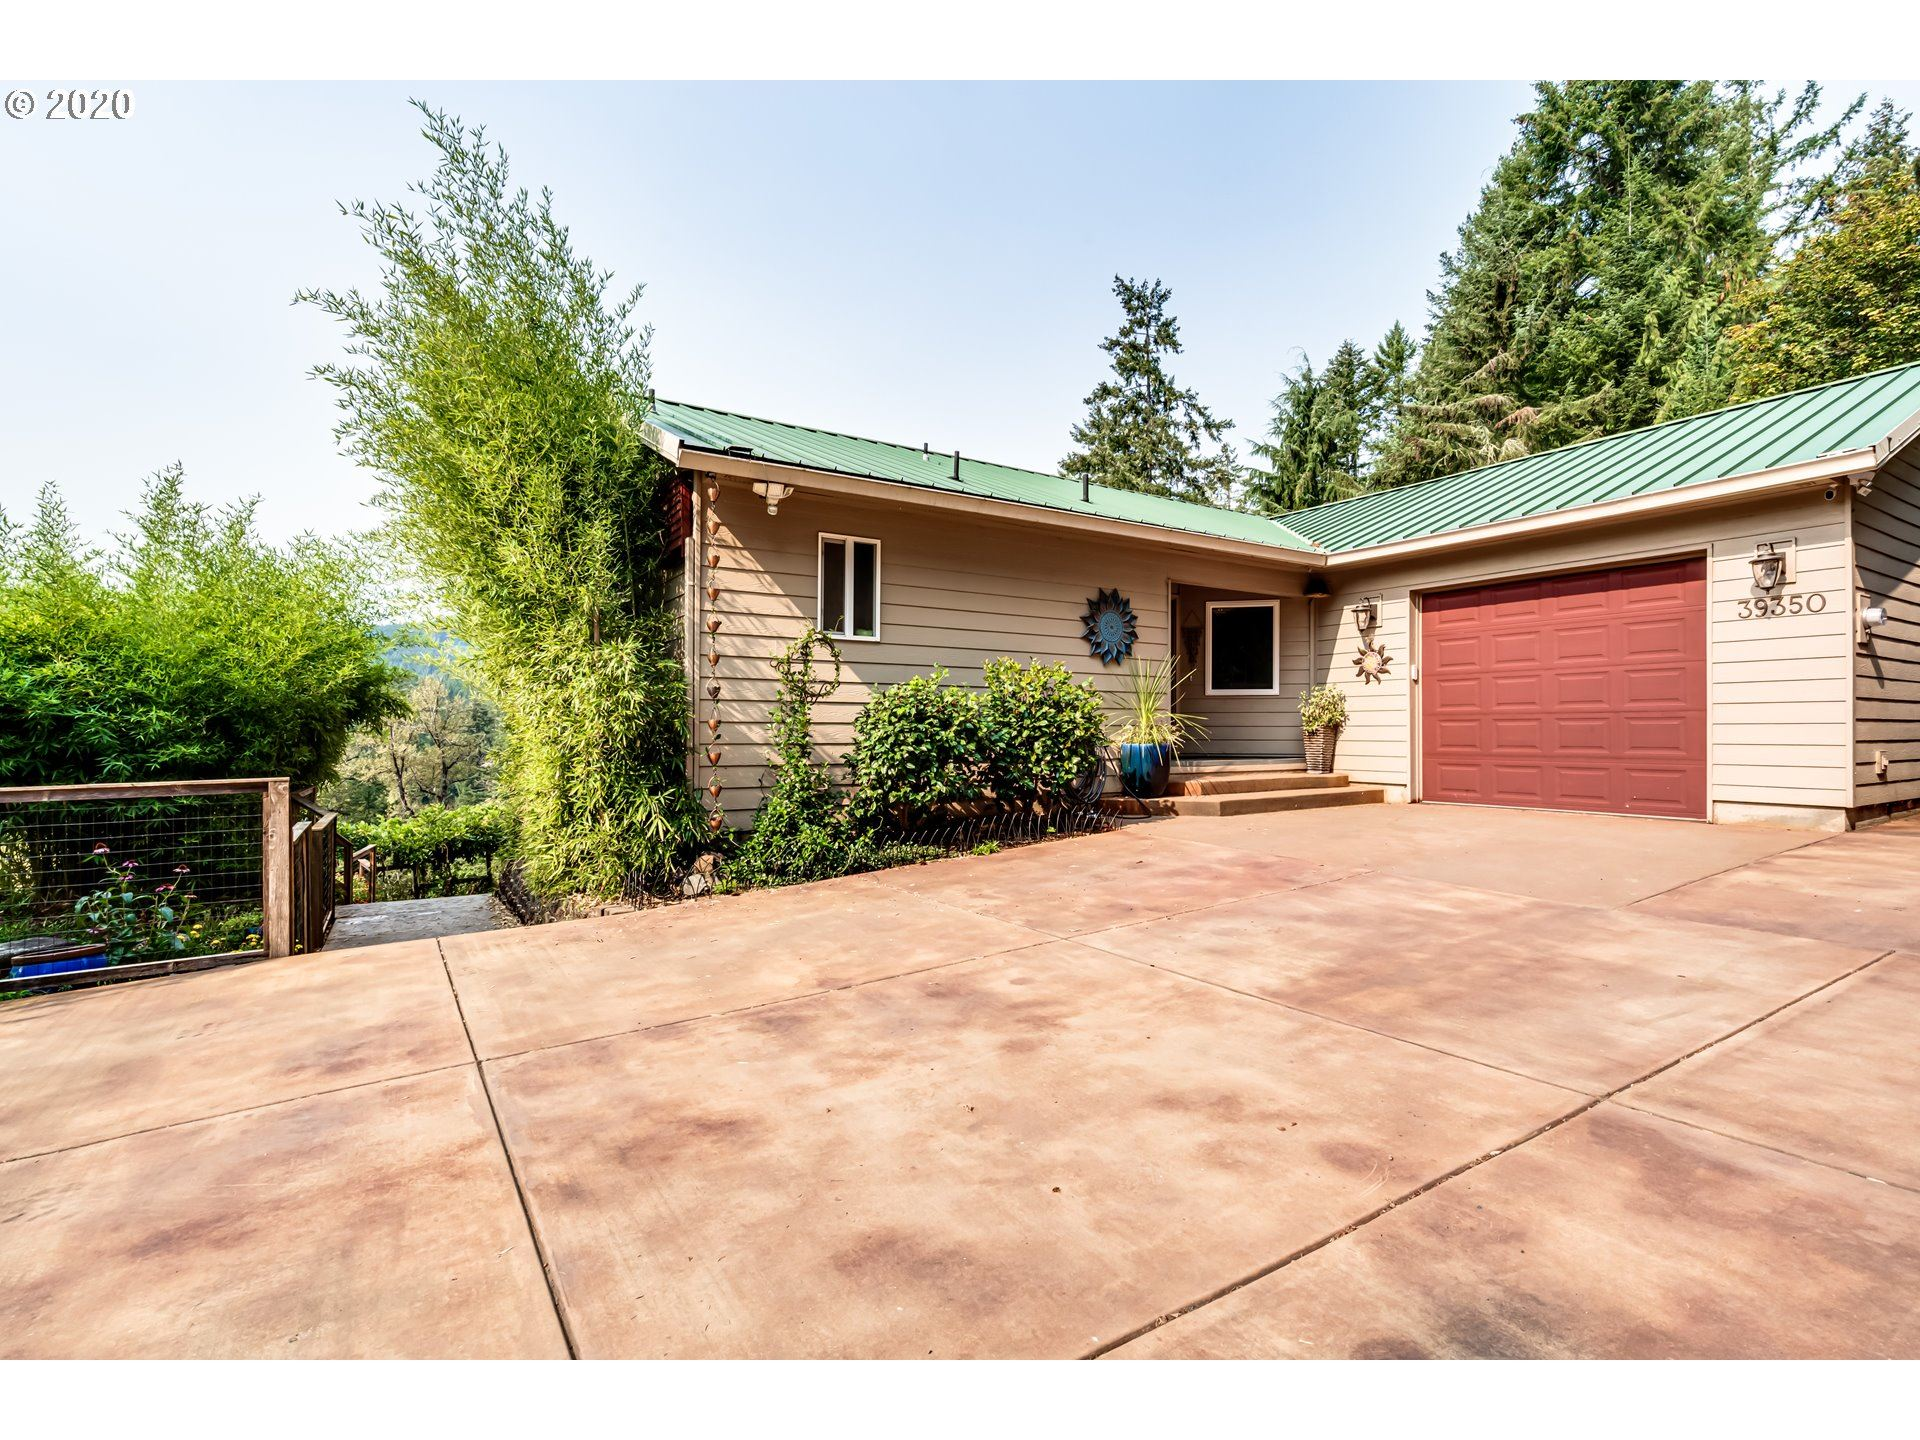 Photo for 39350 EAGLES REST RD, Dexter, OR 97431 (MLS # 20421574)